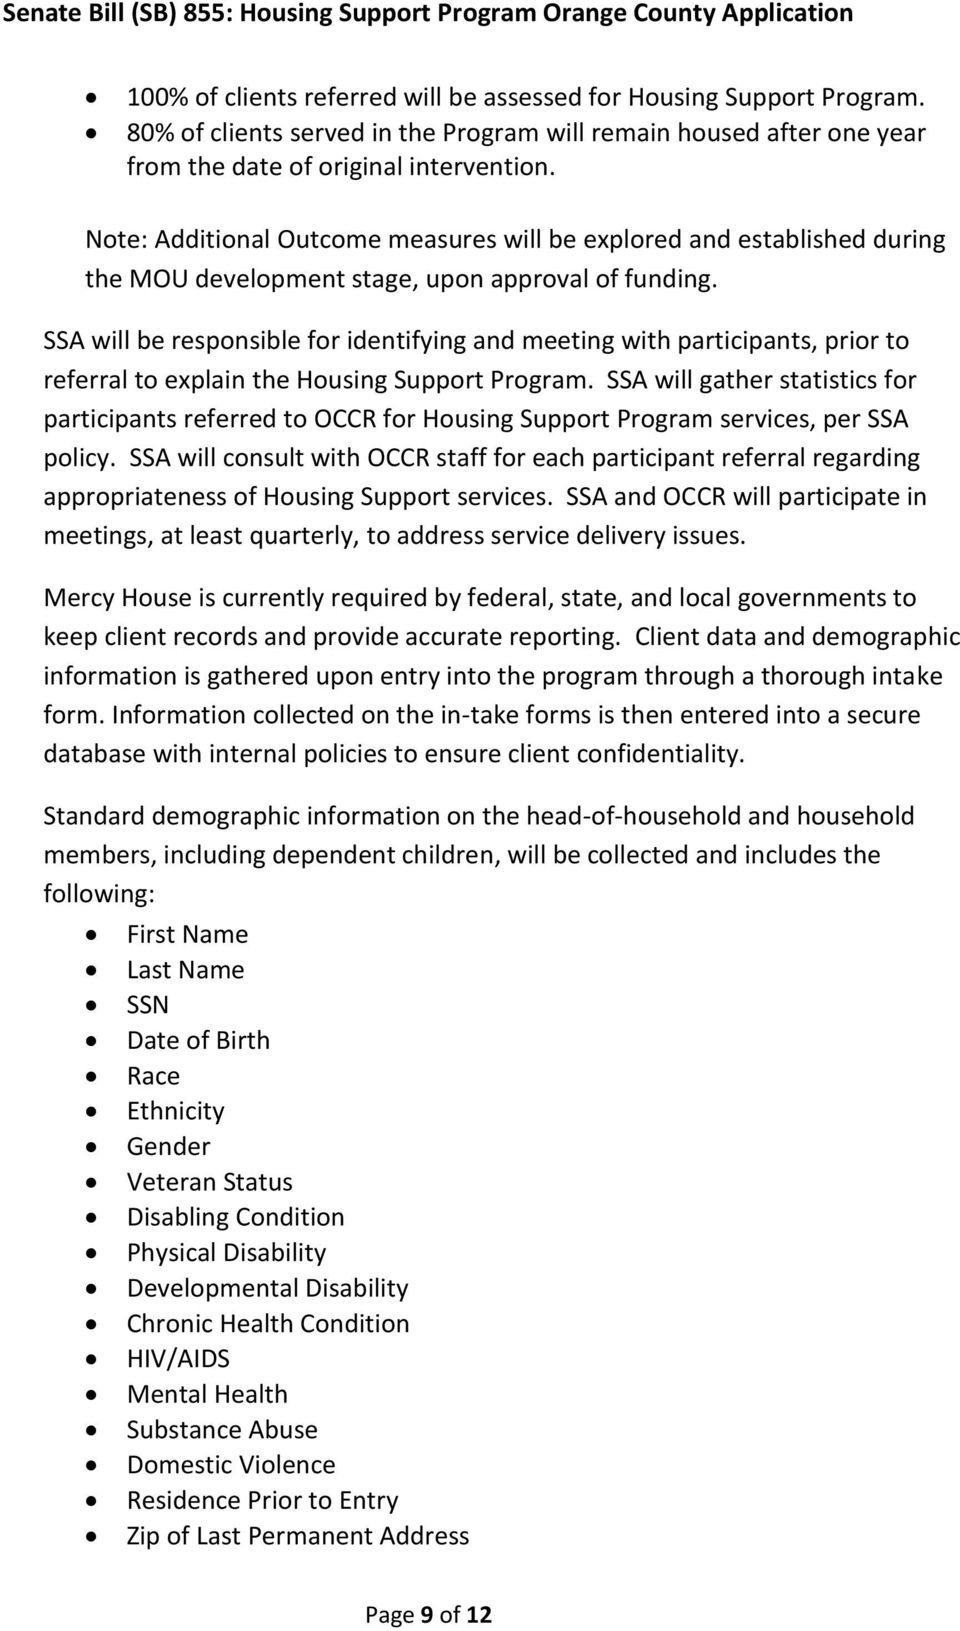 SSA will be responsible for identifying and meeting with participants, prior to referral to explain the Housing Support Program.